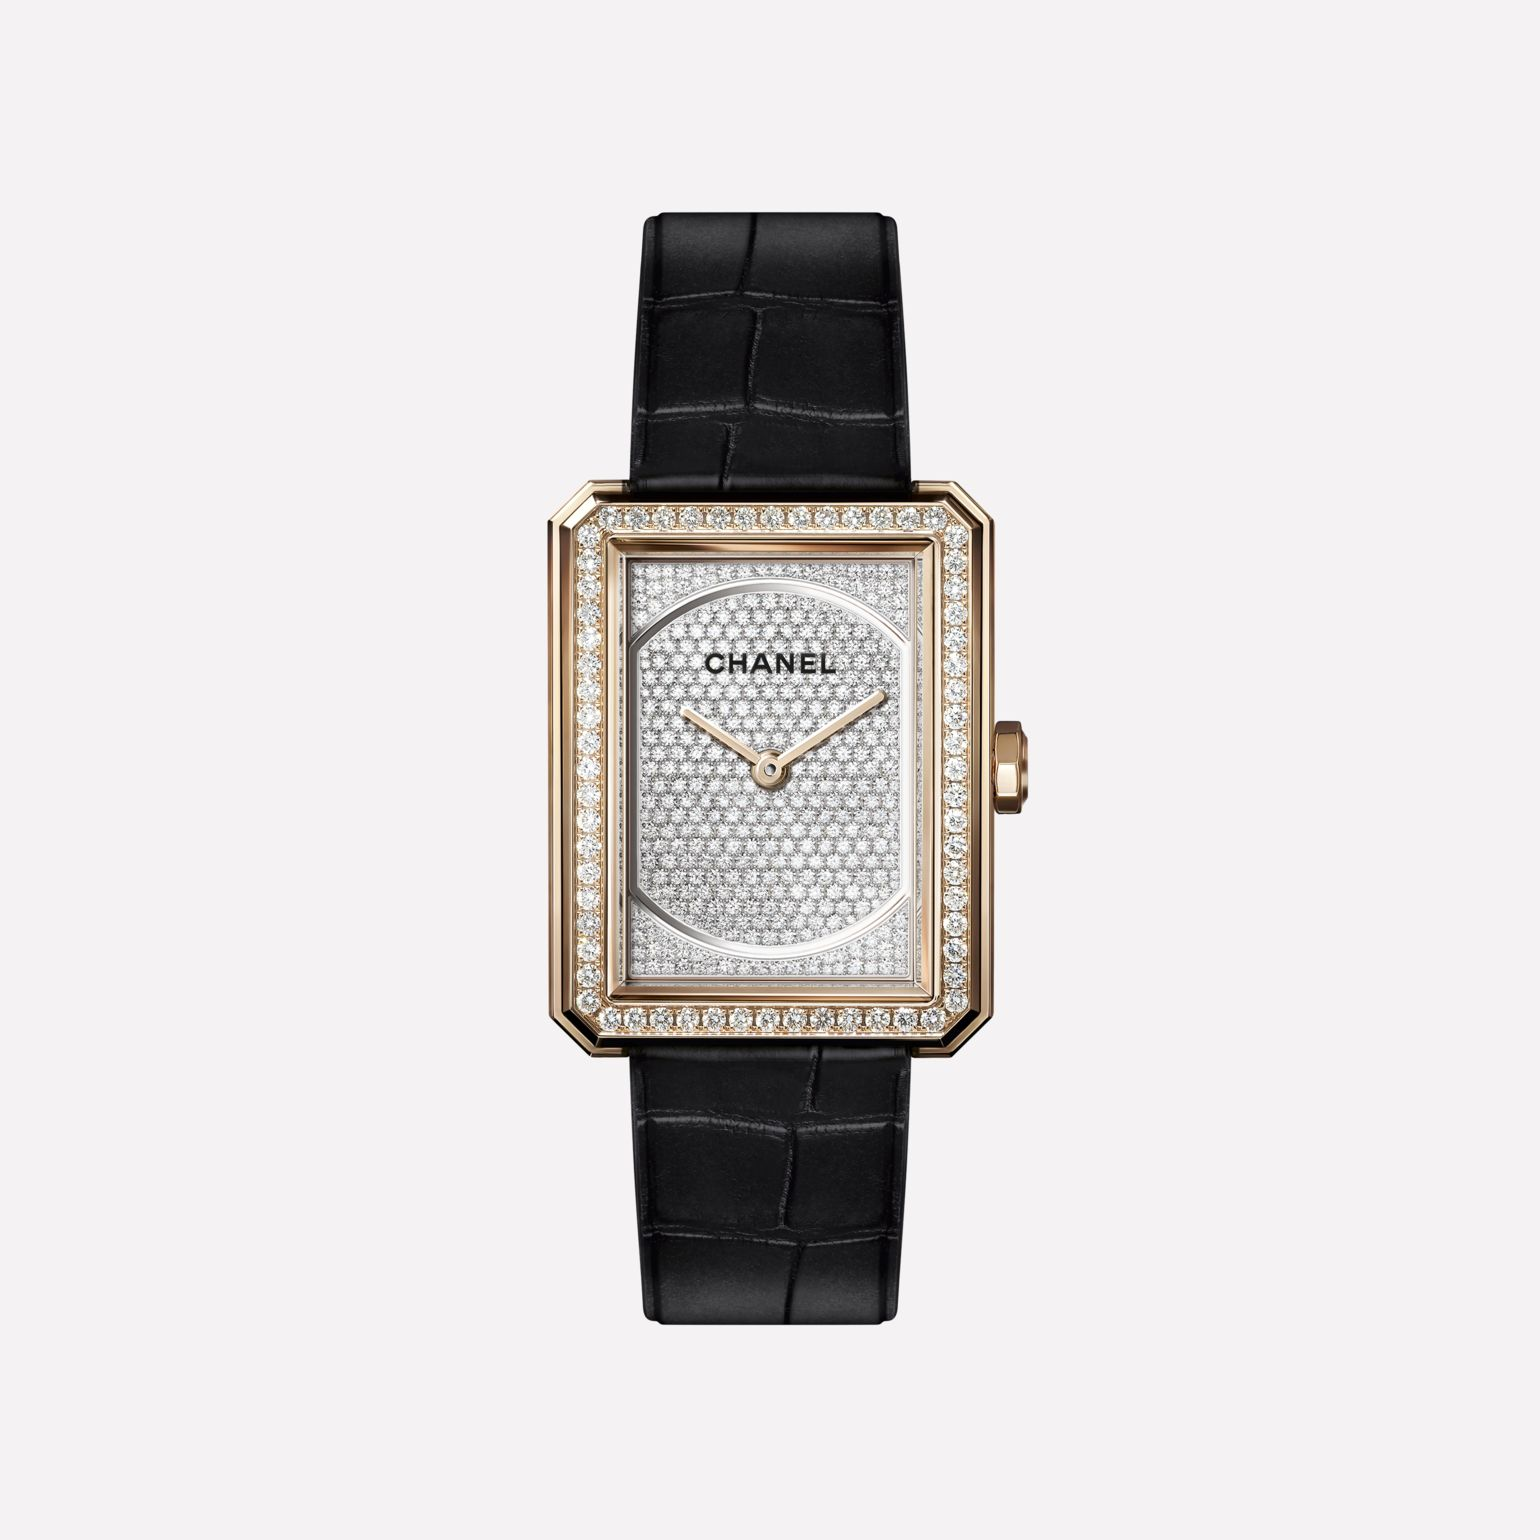 BOY·FRIEND Watch Medium version, BEIGE GOLD and dial set with diamonds, shiny alligator strap